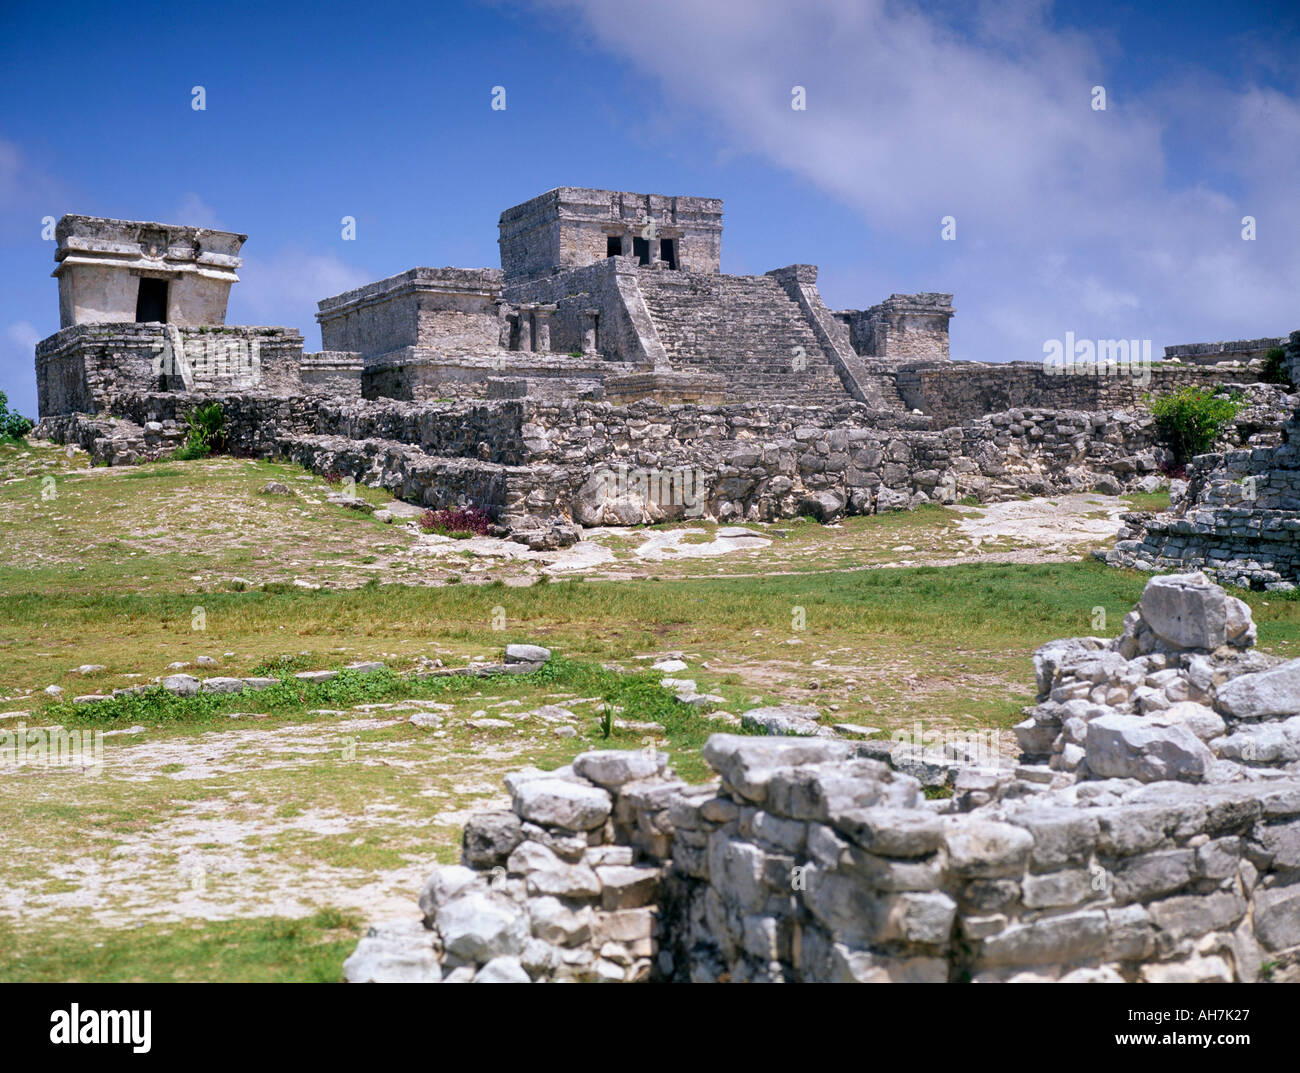 Mayan archaeological site Tulum Yucatan Mexico North America - Stock Image